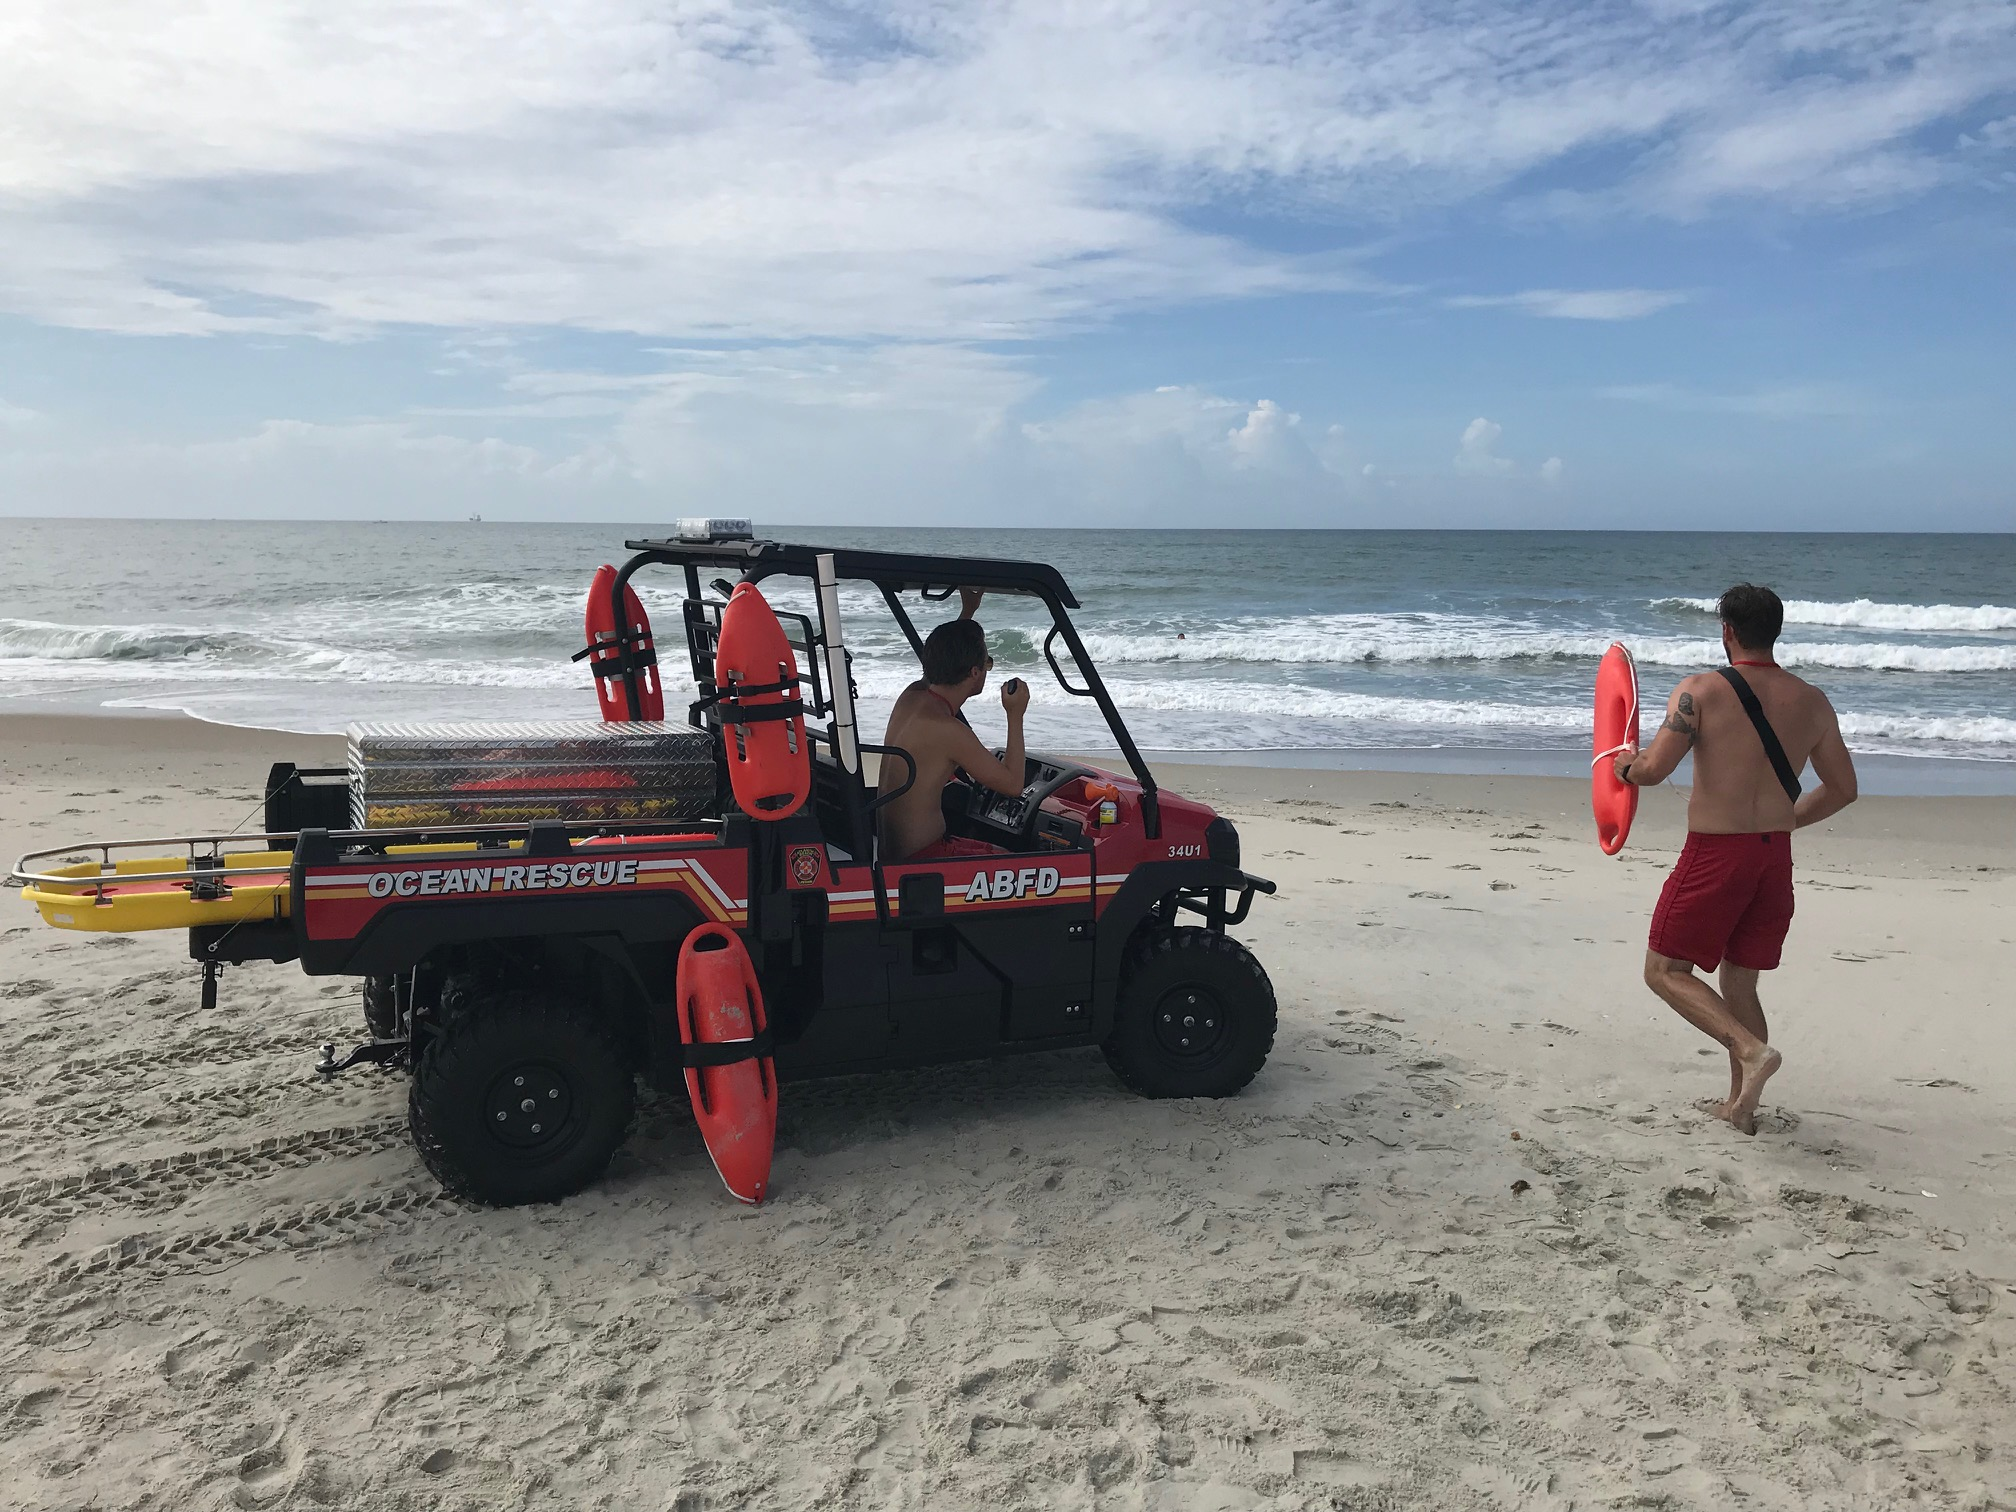 Atlantic Beach Lifeguards